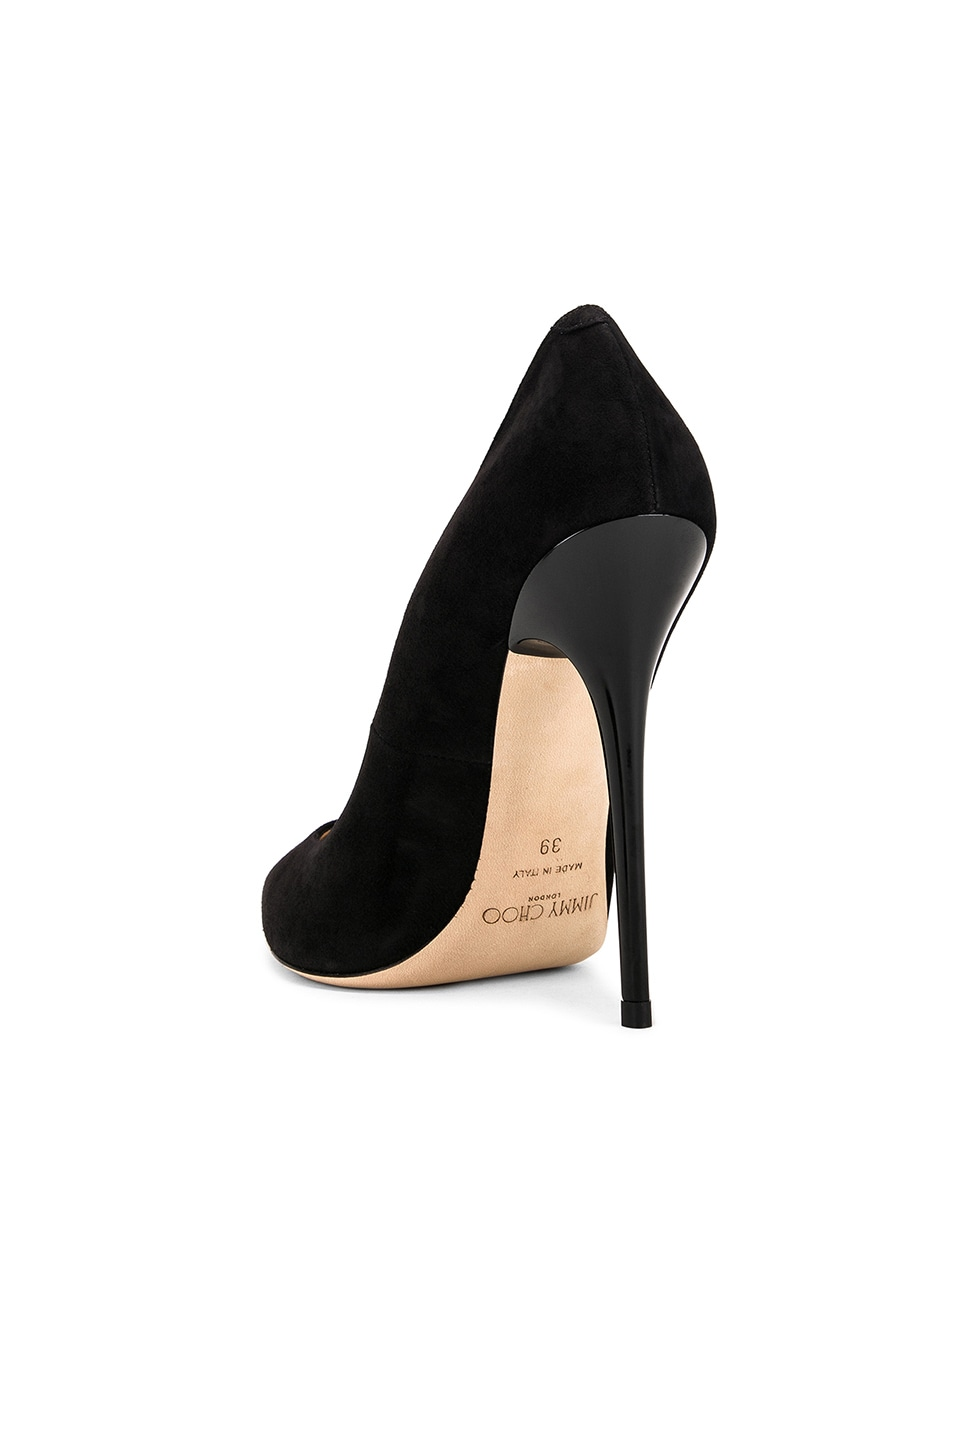 Image 3 of Jimmy Choo Anouk Suede Pumps in Black